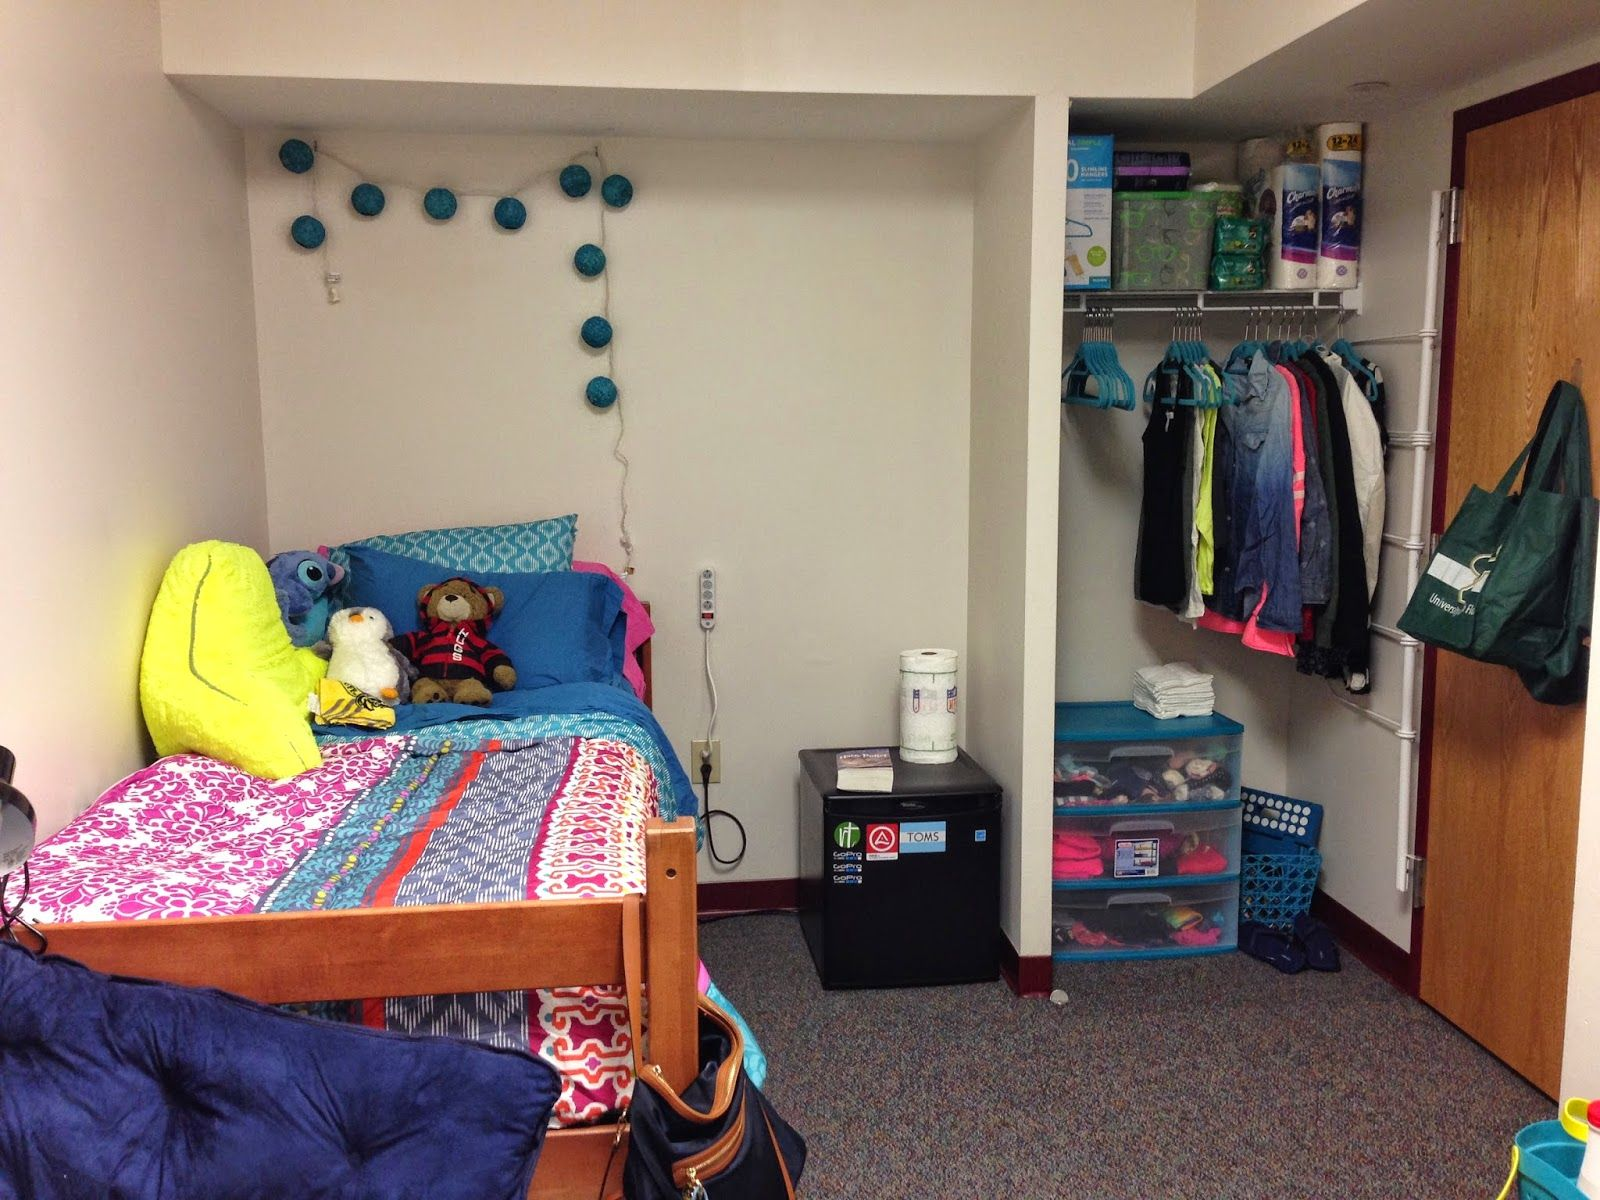 My Dorm This 2017 Here At Usf I Live Cypress C In University Of South Florida And Made A Room Tour Video